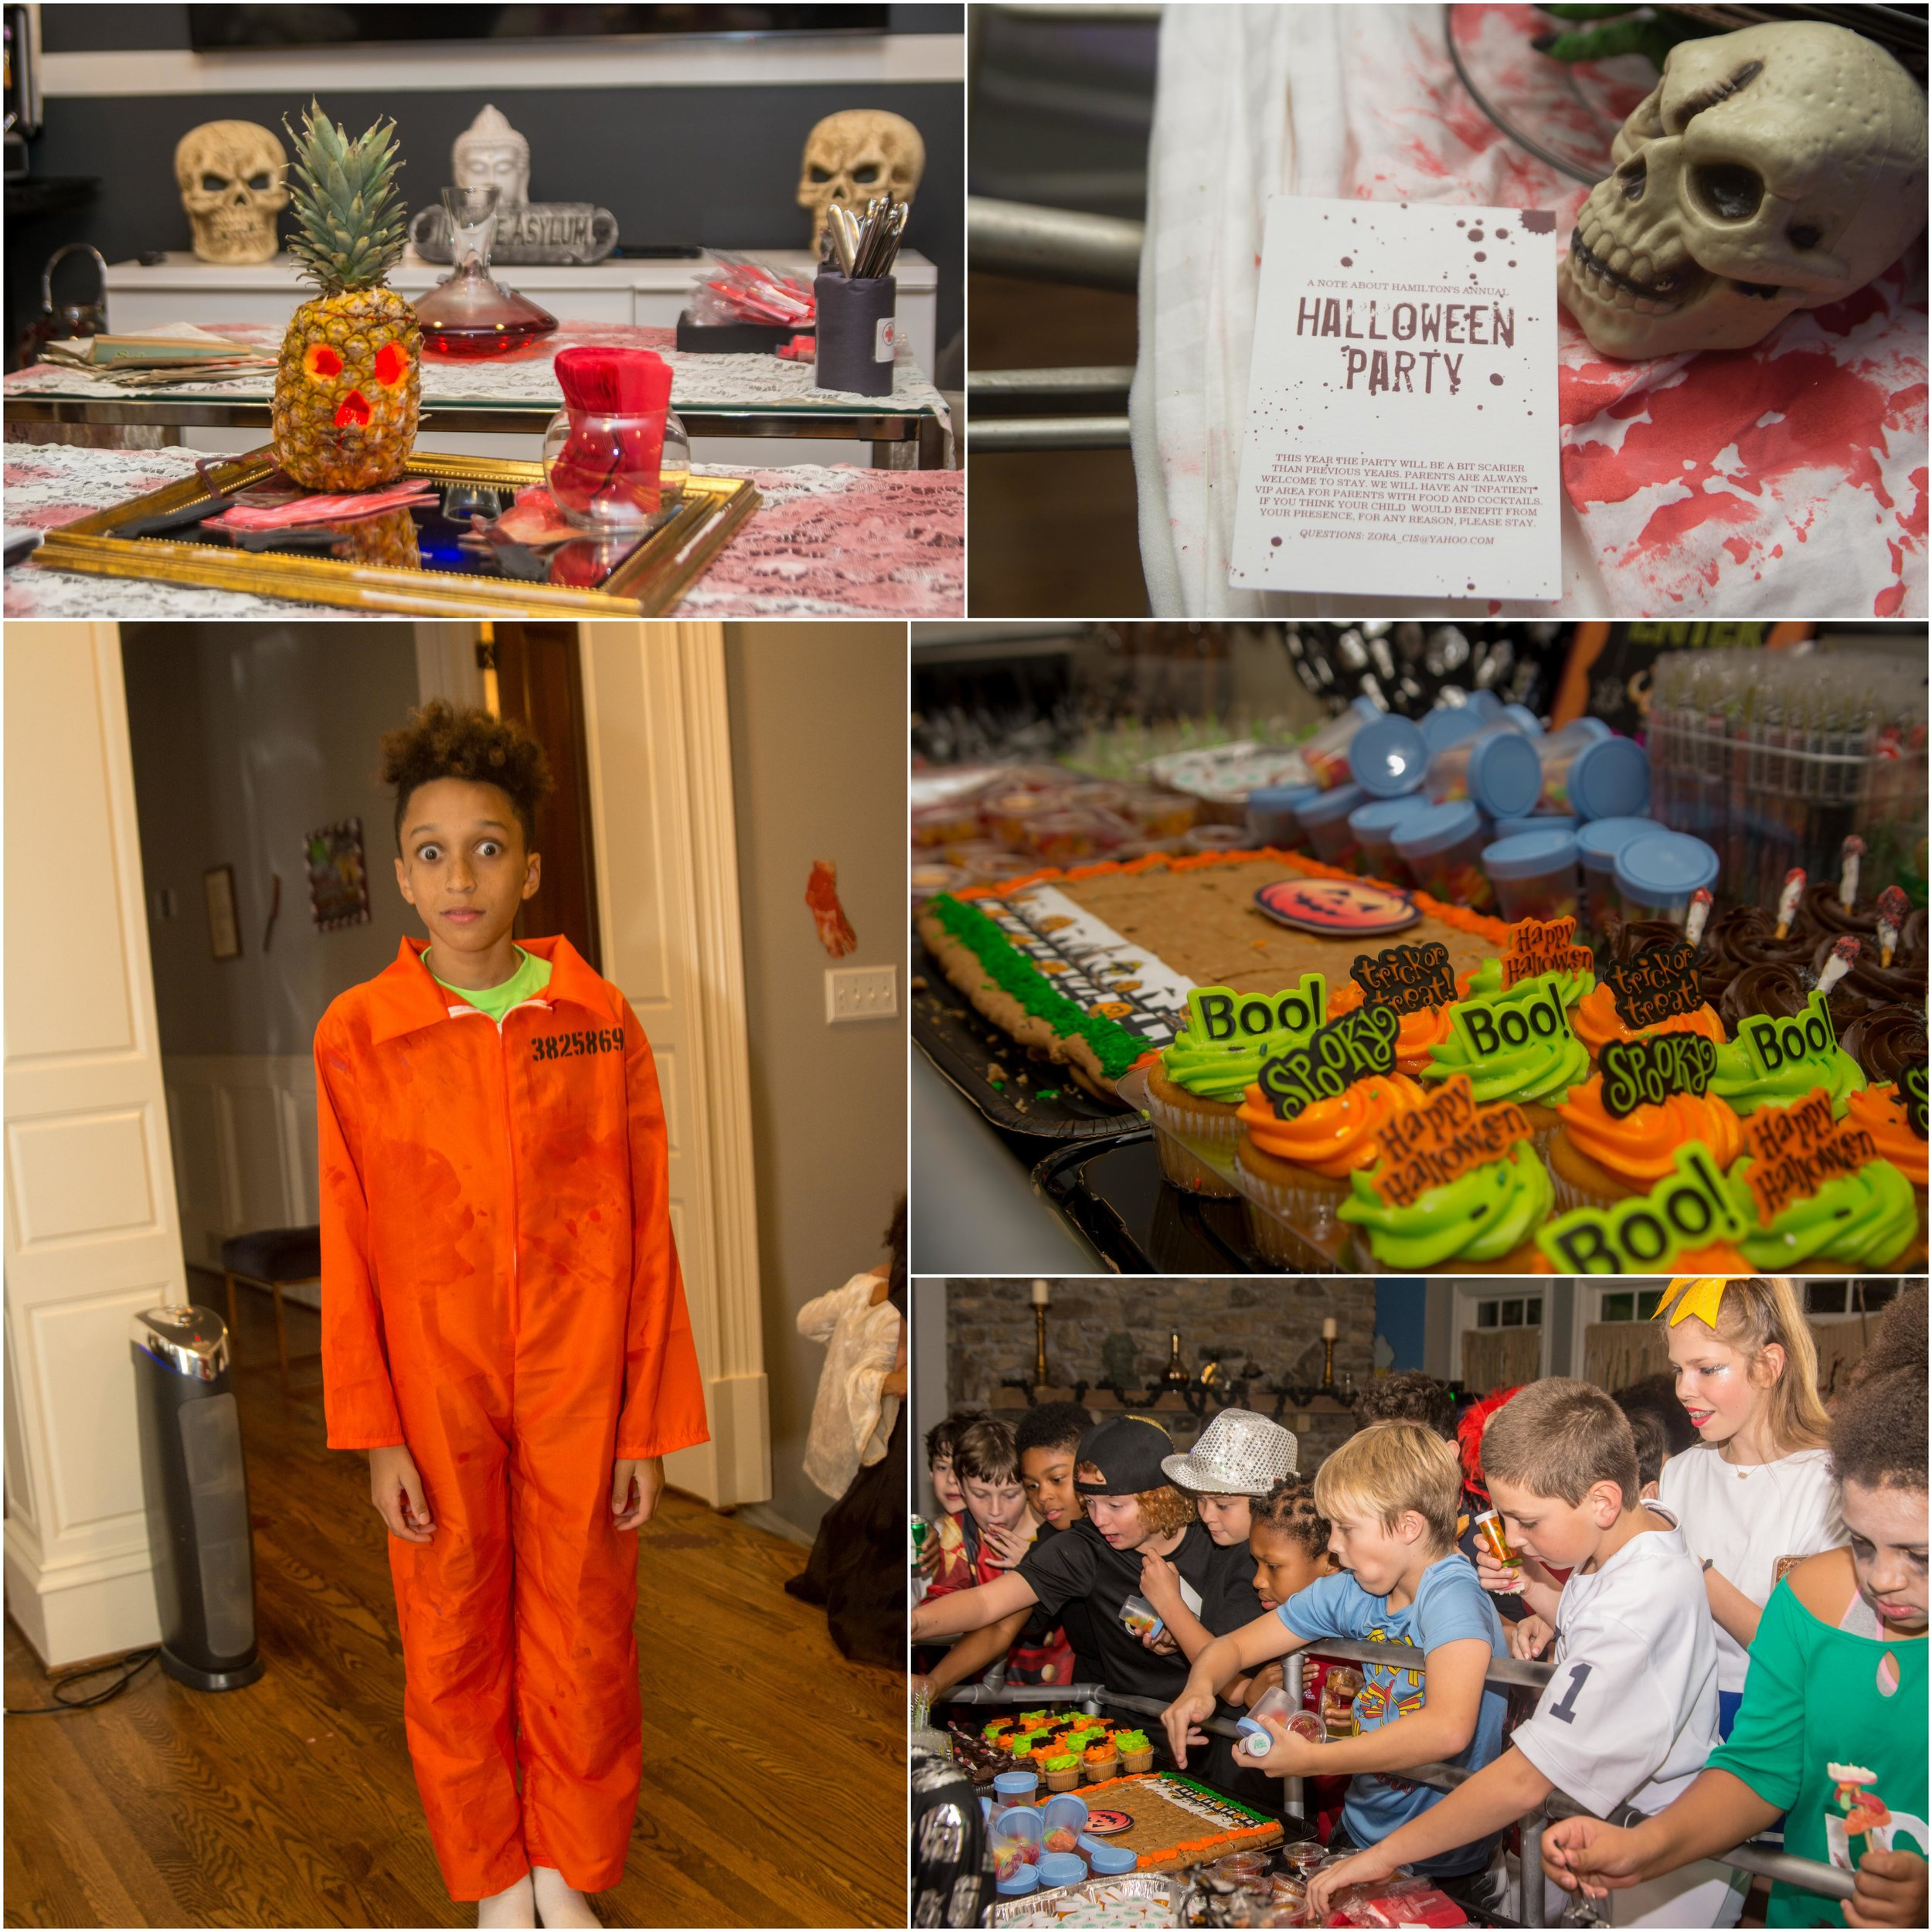 Hamilton's Halloween Party - October 2018